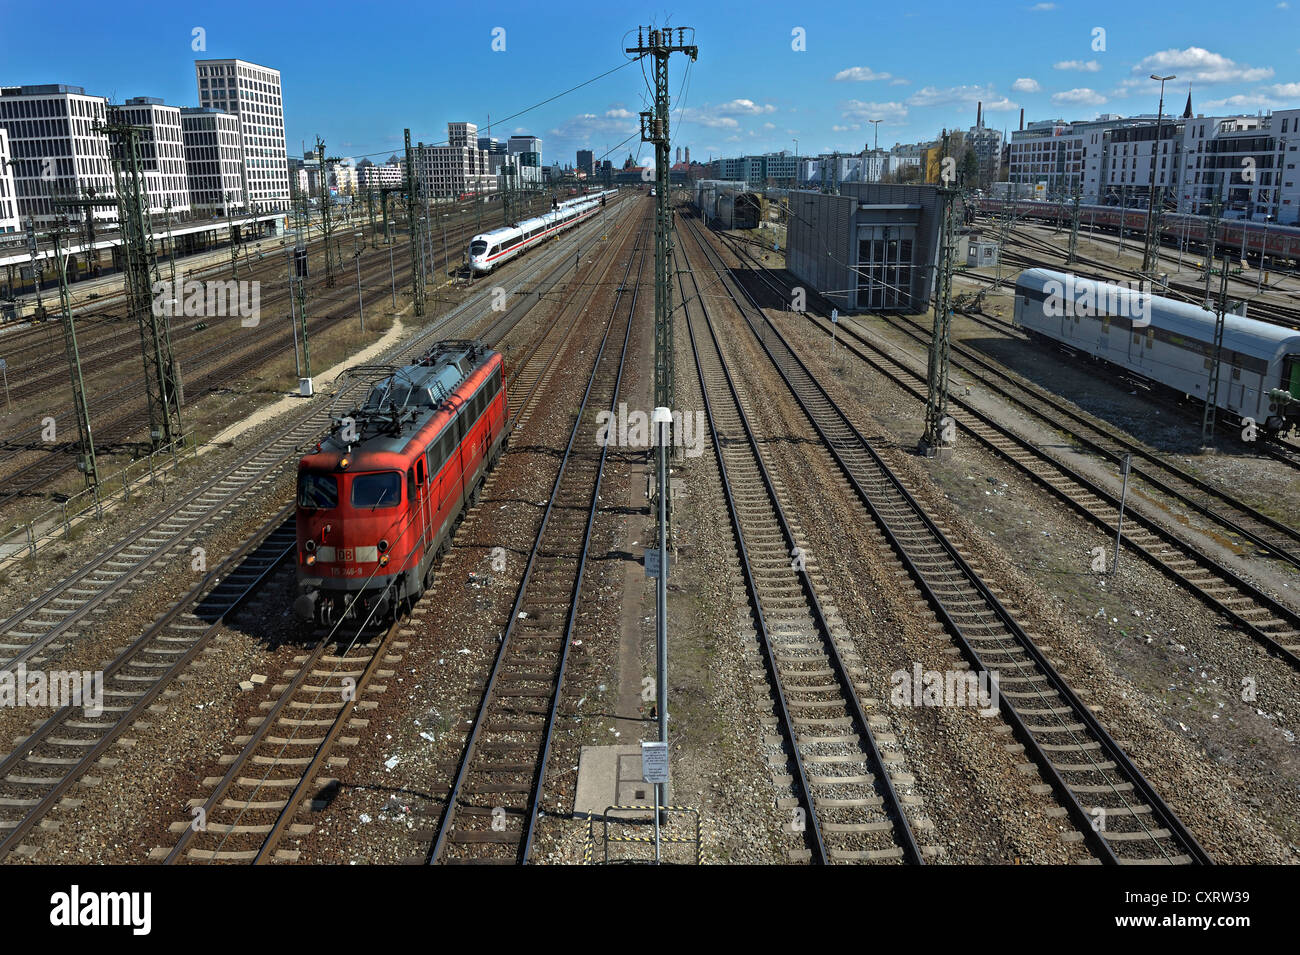 Trackage or railway tracks near Donnersbergerbruecke bridge, Munich, Bavaria, Germany, Europe - Stock Image